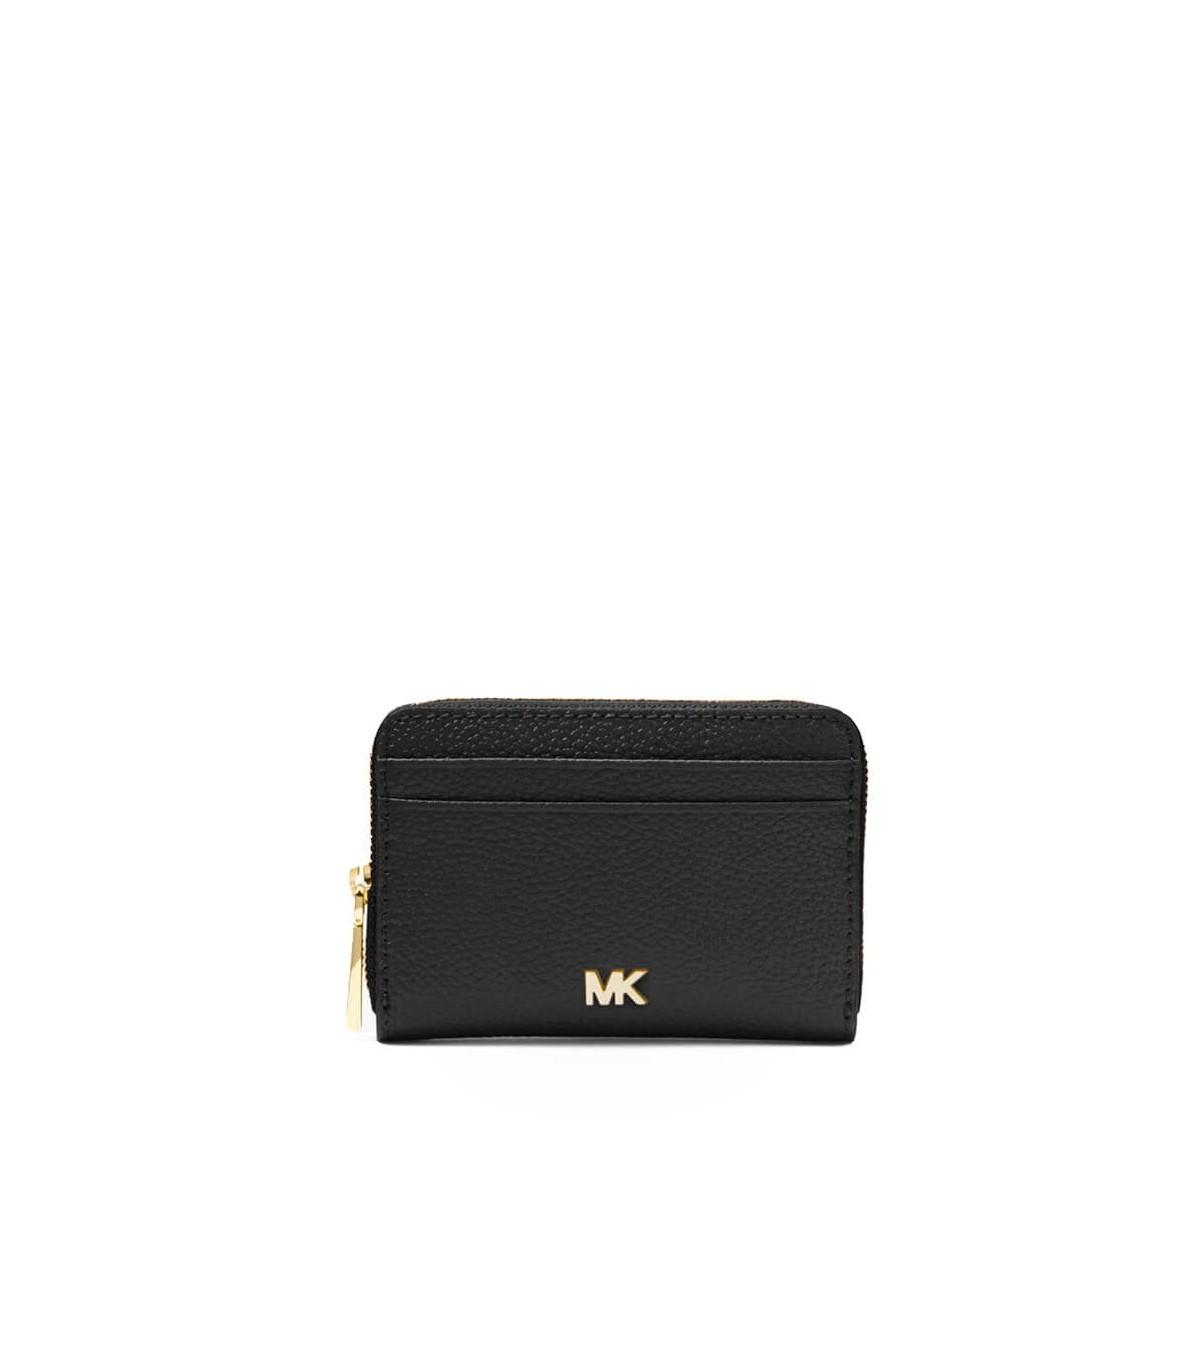 97504b118930 Michael Kors Black Leather Wallet in Black - Save 16% - Lyst